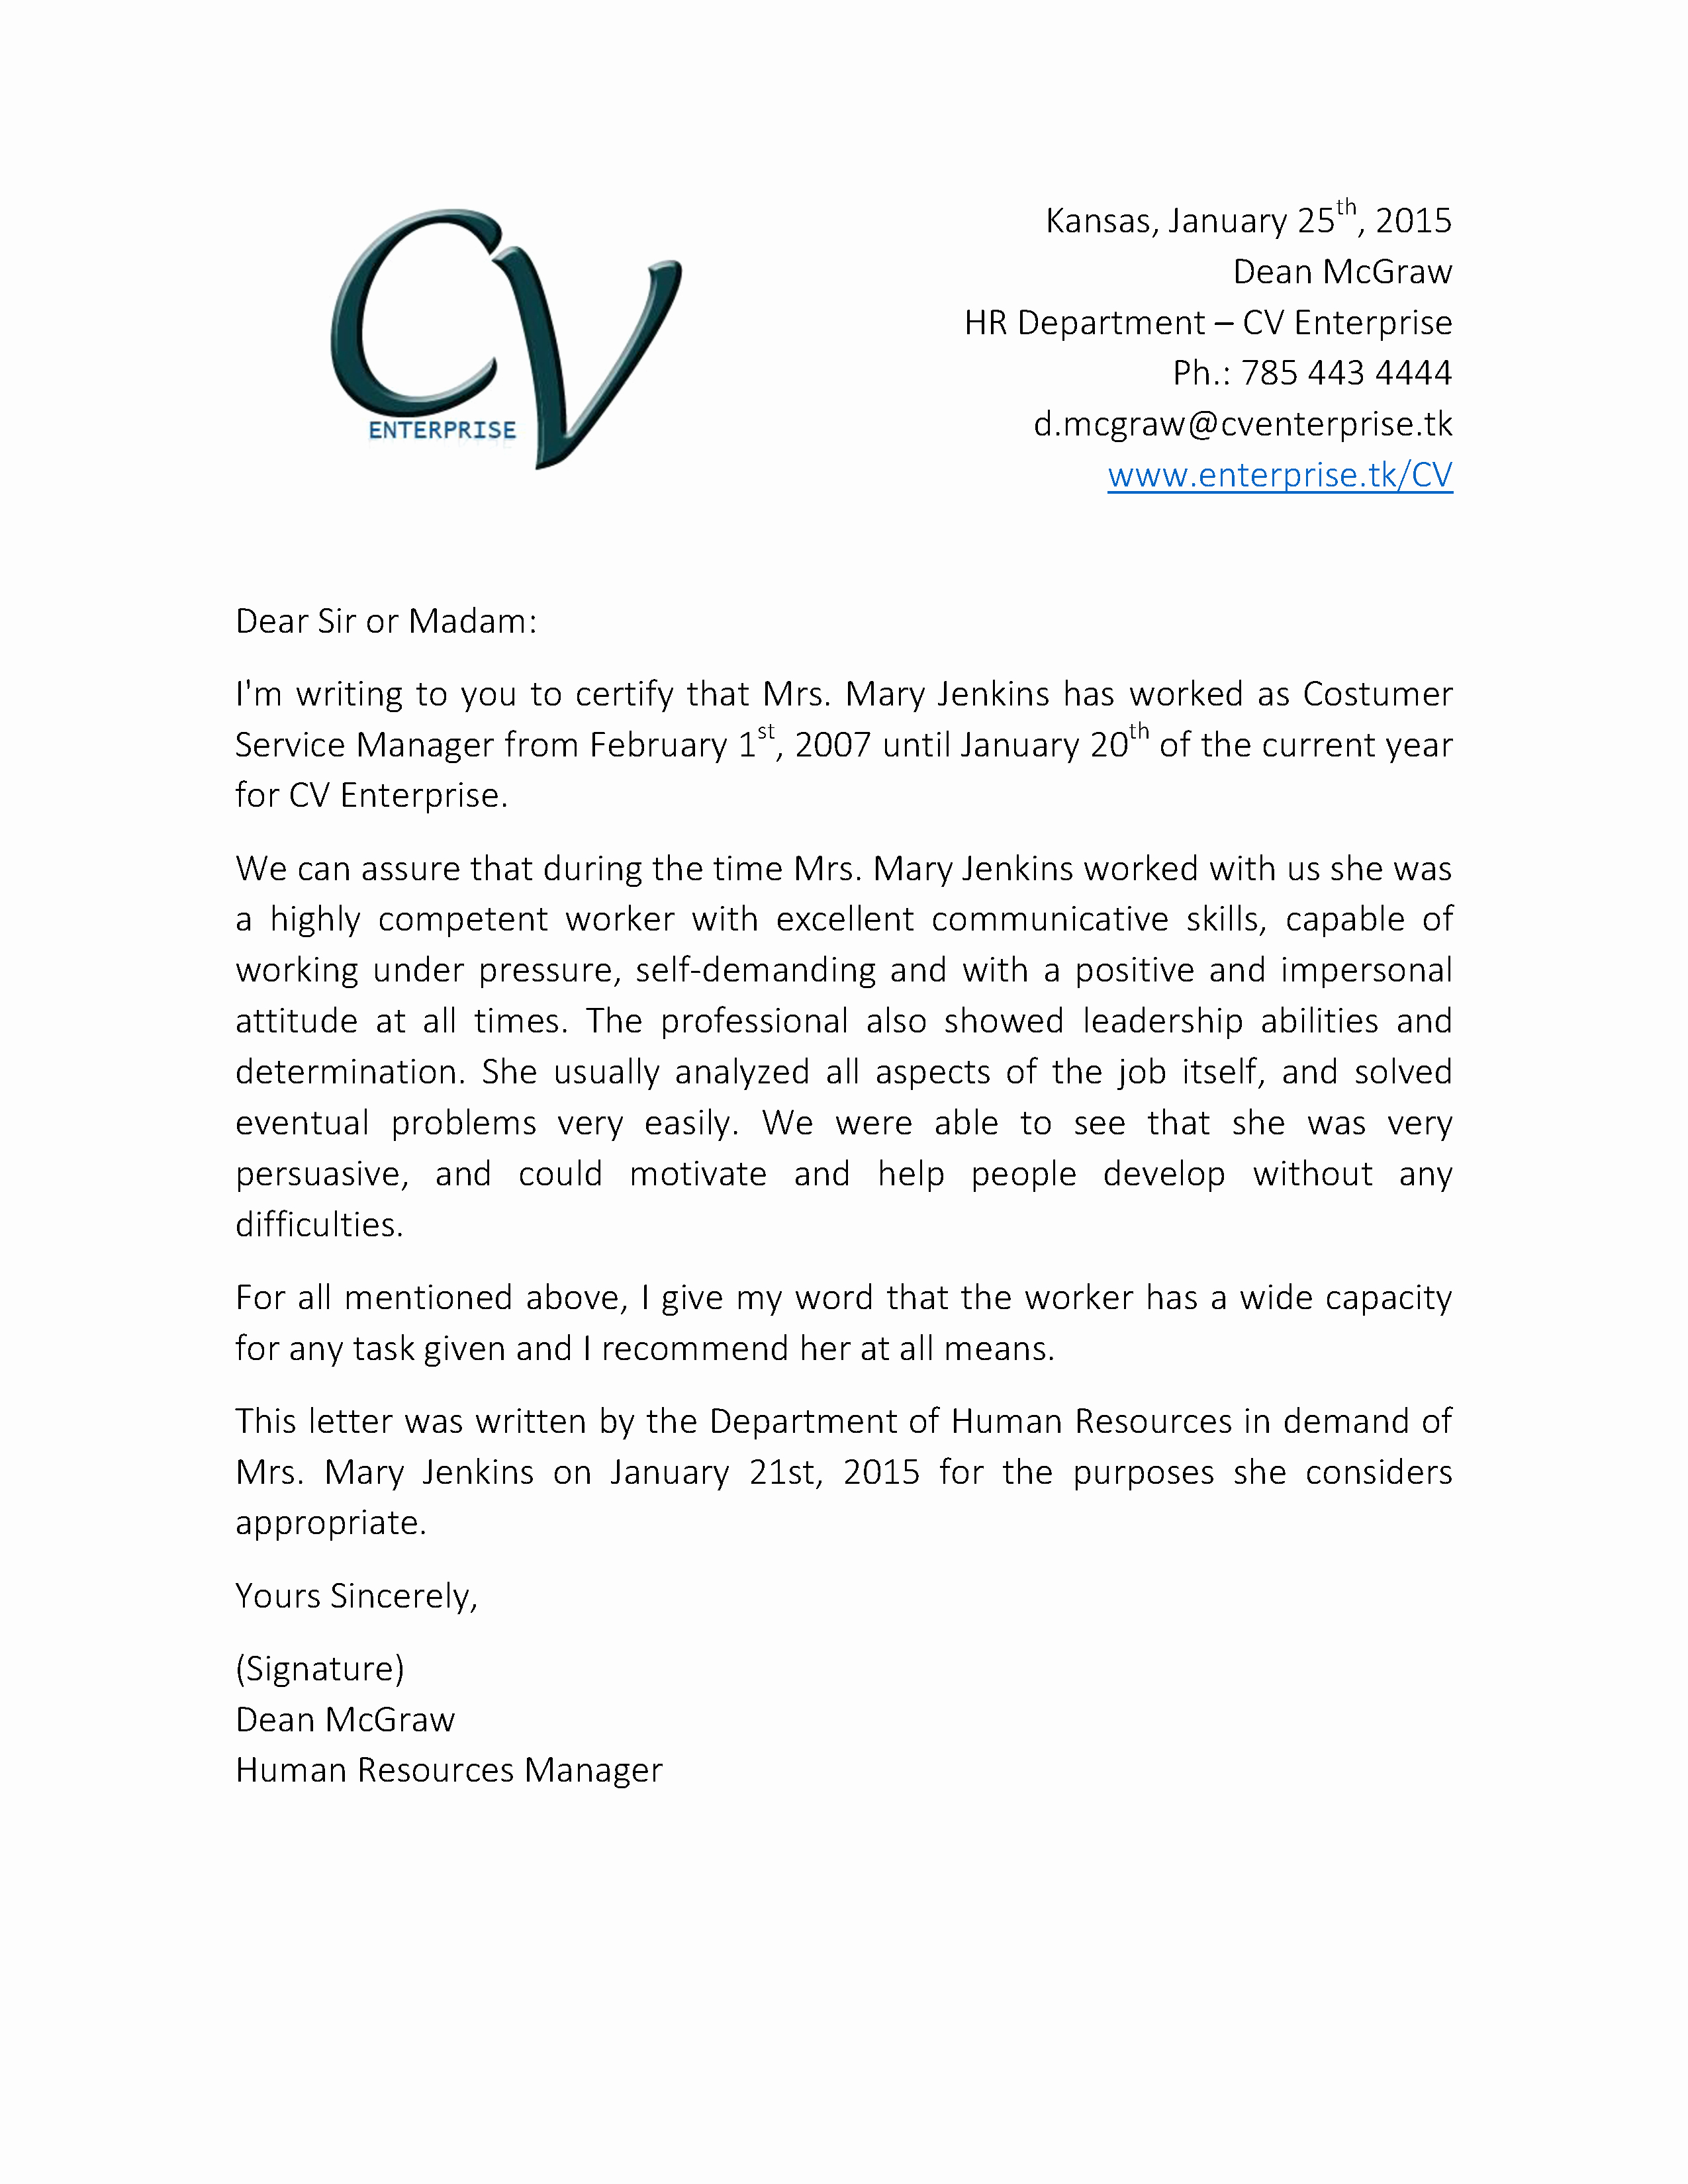 Letter Of Recommendation Template Lovely Re Mendation Letter for Customer Service Job 2 Grow